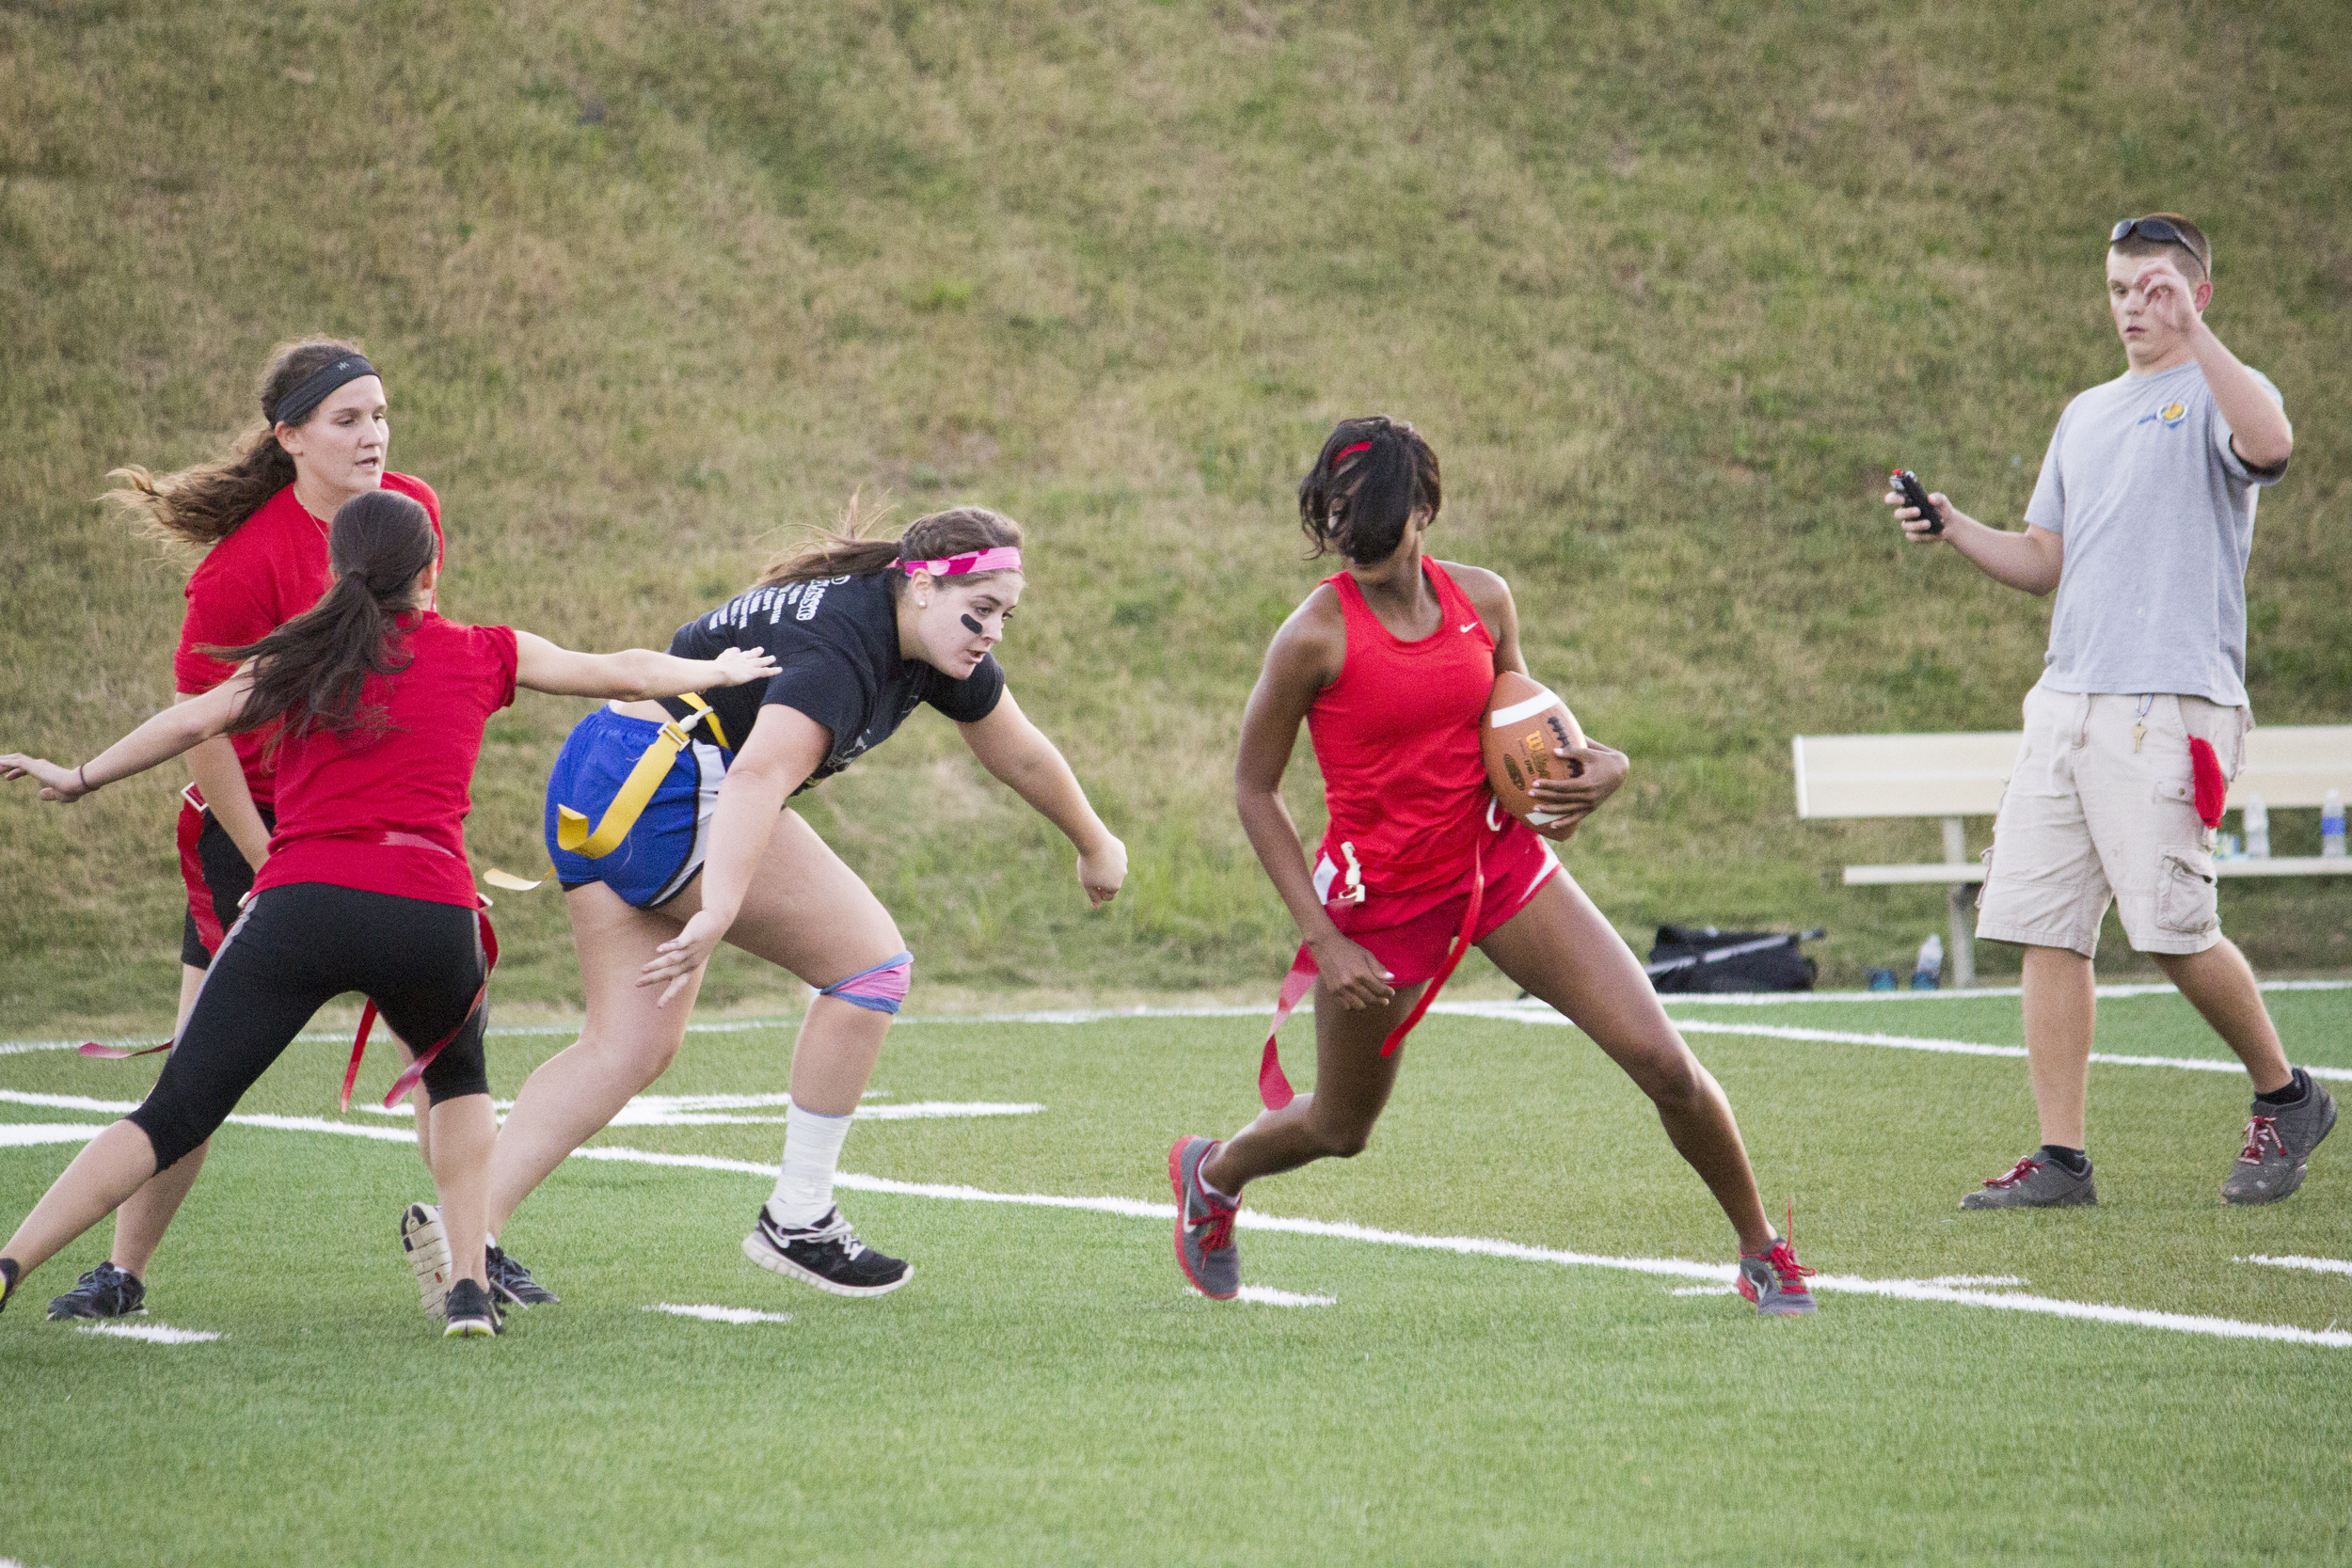 Senior Jackia Whetstone makes a running play to her left to avoid the oncoming junior player Kayla Samoros.